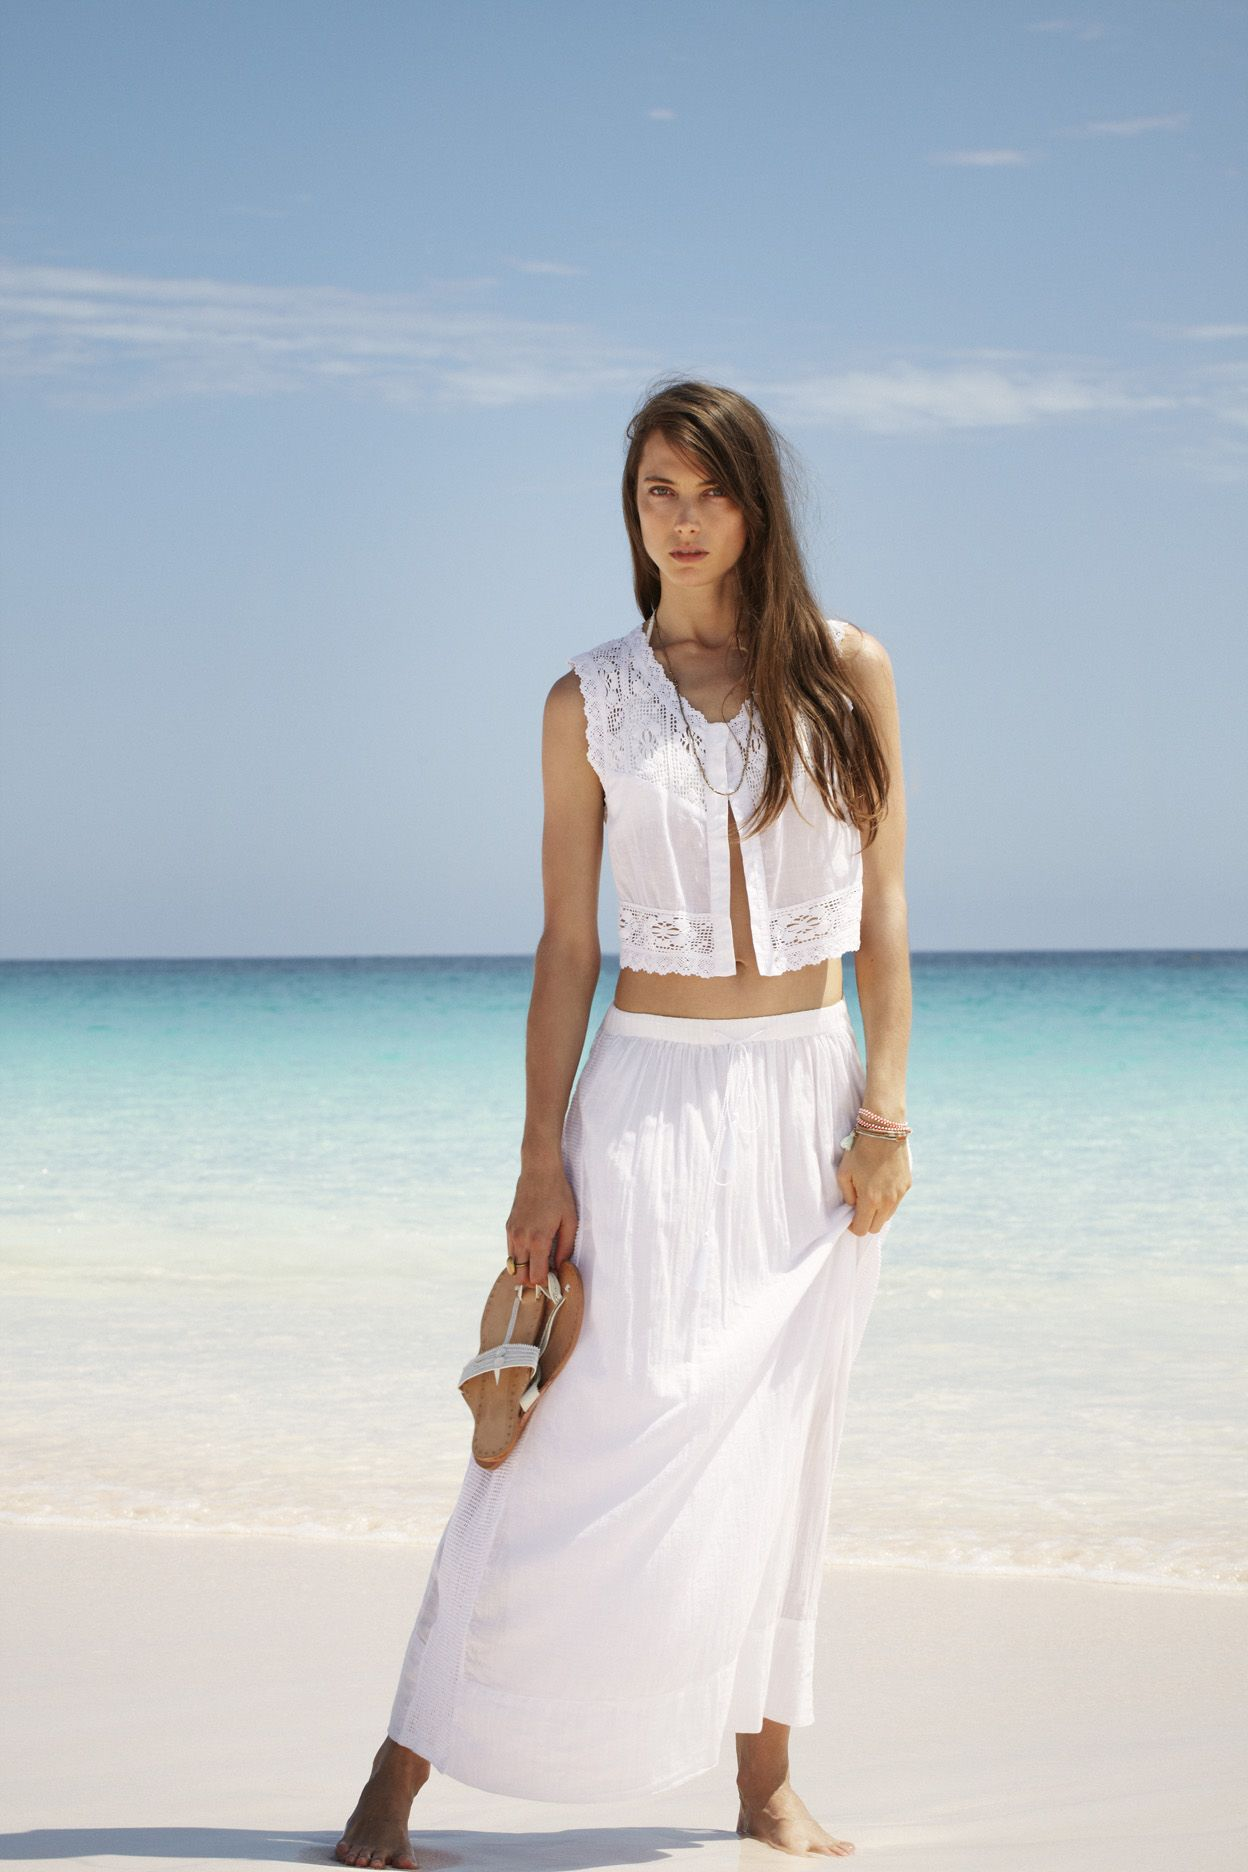 Beach Boutique 2012. US click image to shop. Canada shop here: http://tinyurl.com/cthms5t #womenswear #beach